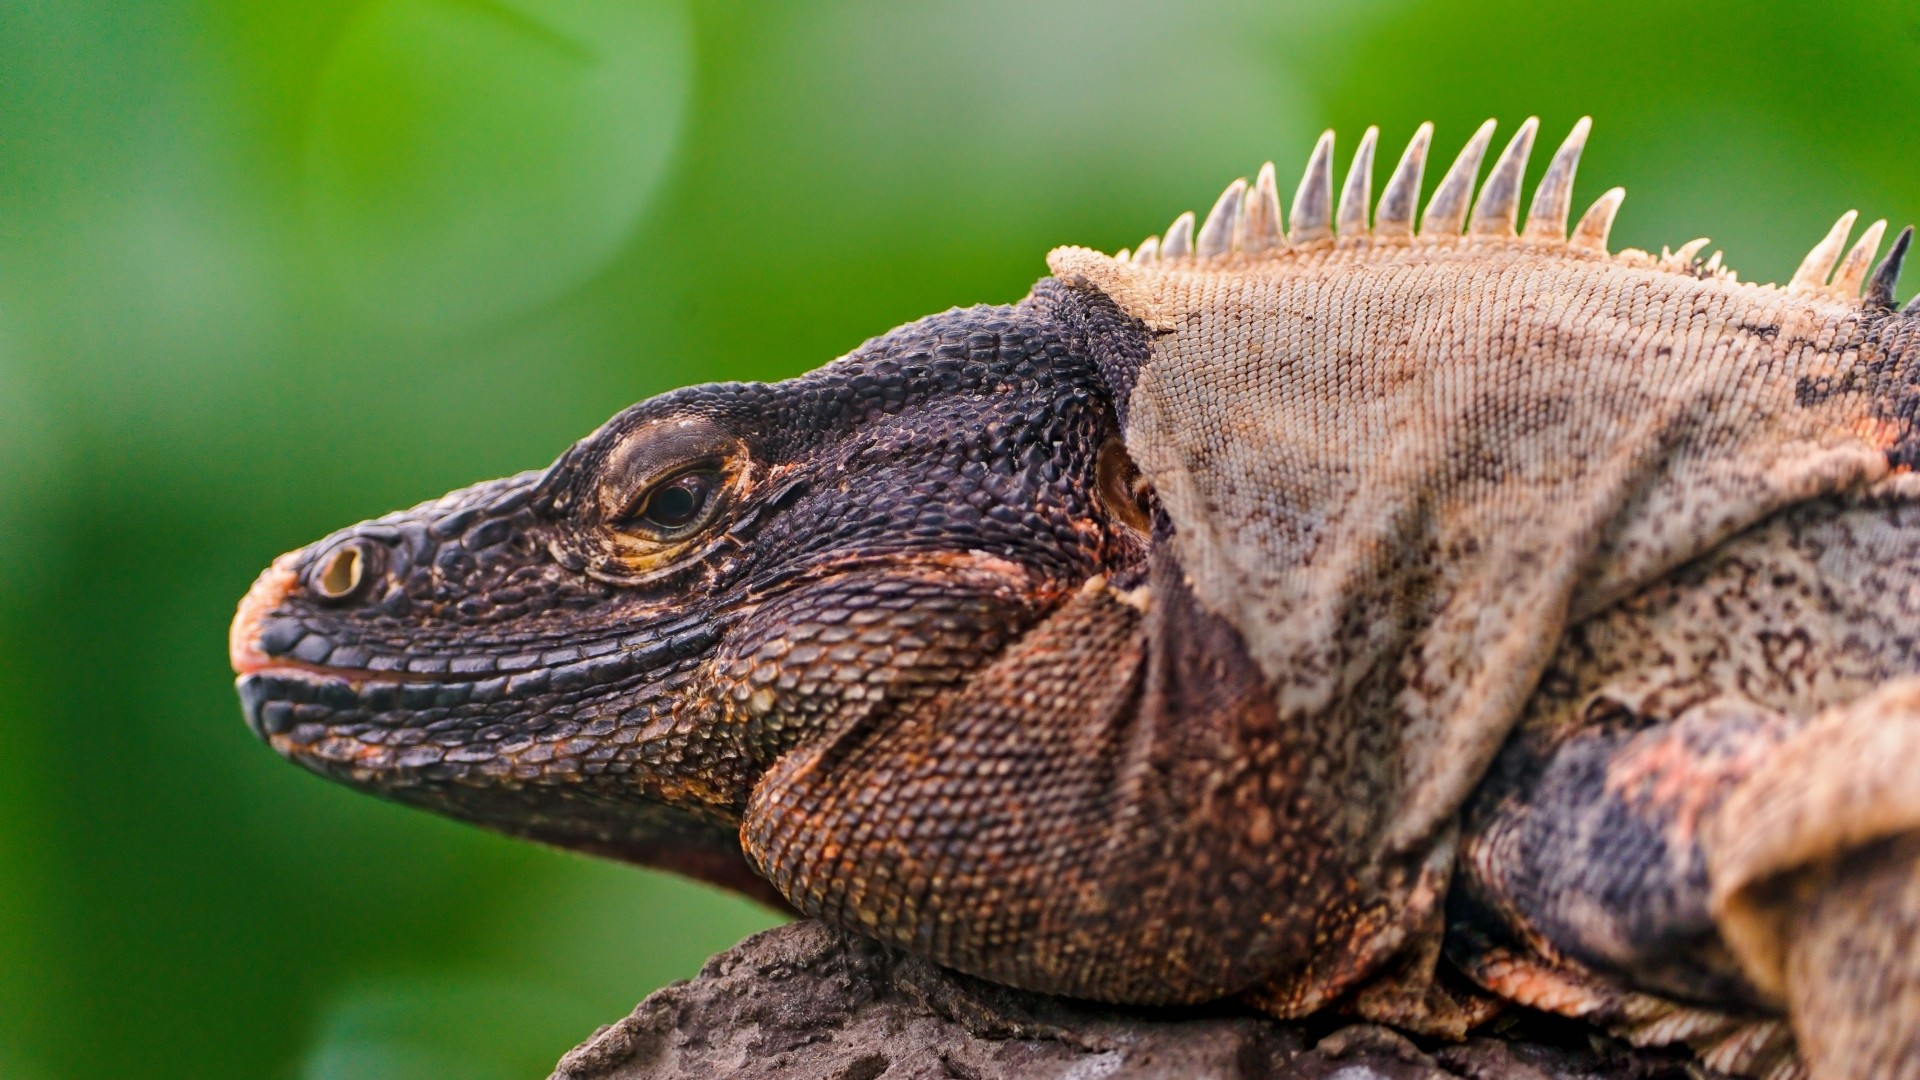 Iguana, Reptile, Lizard, Mexico, Caribbean, Island, green, nature, animal (horizontal)